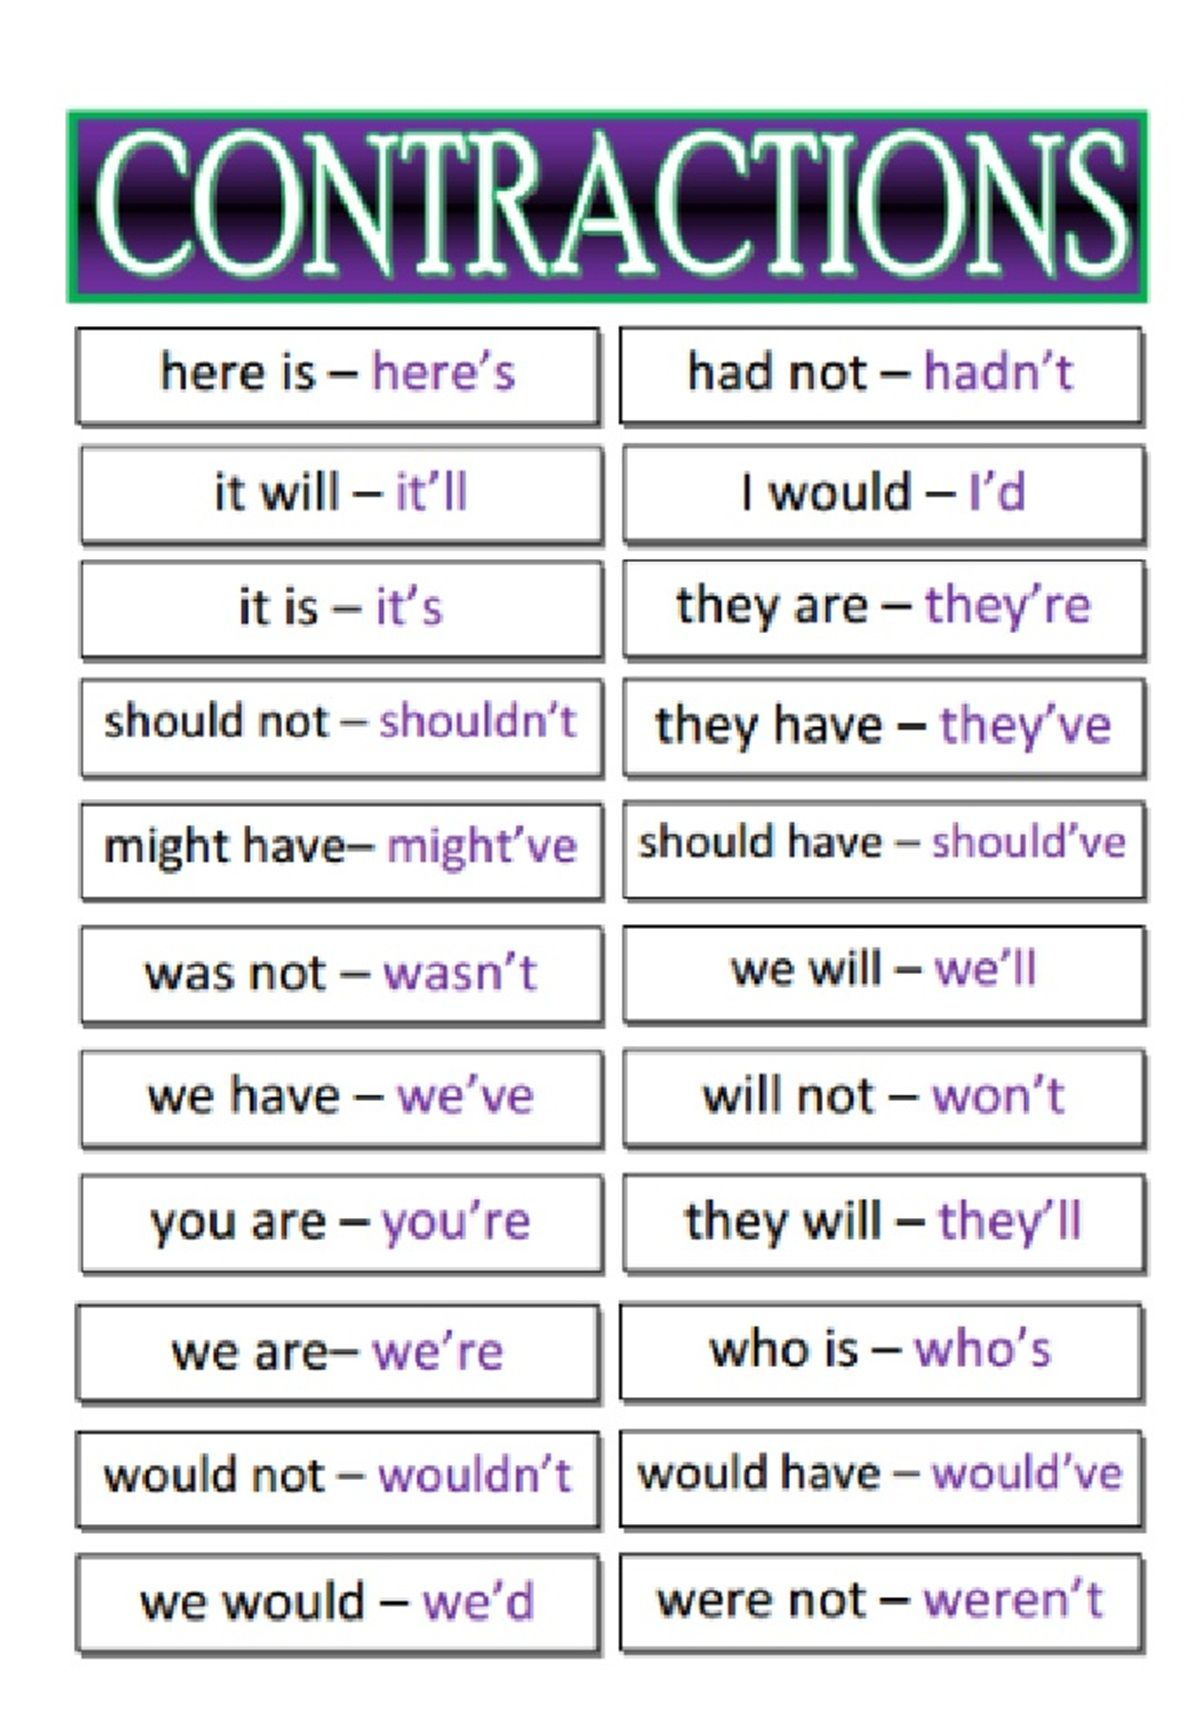 Contractions In English